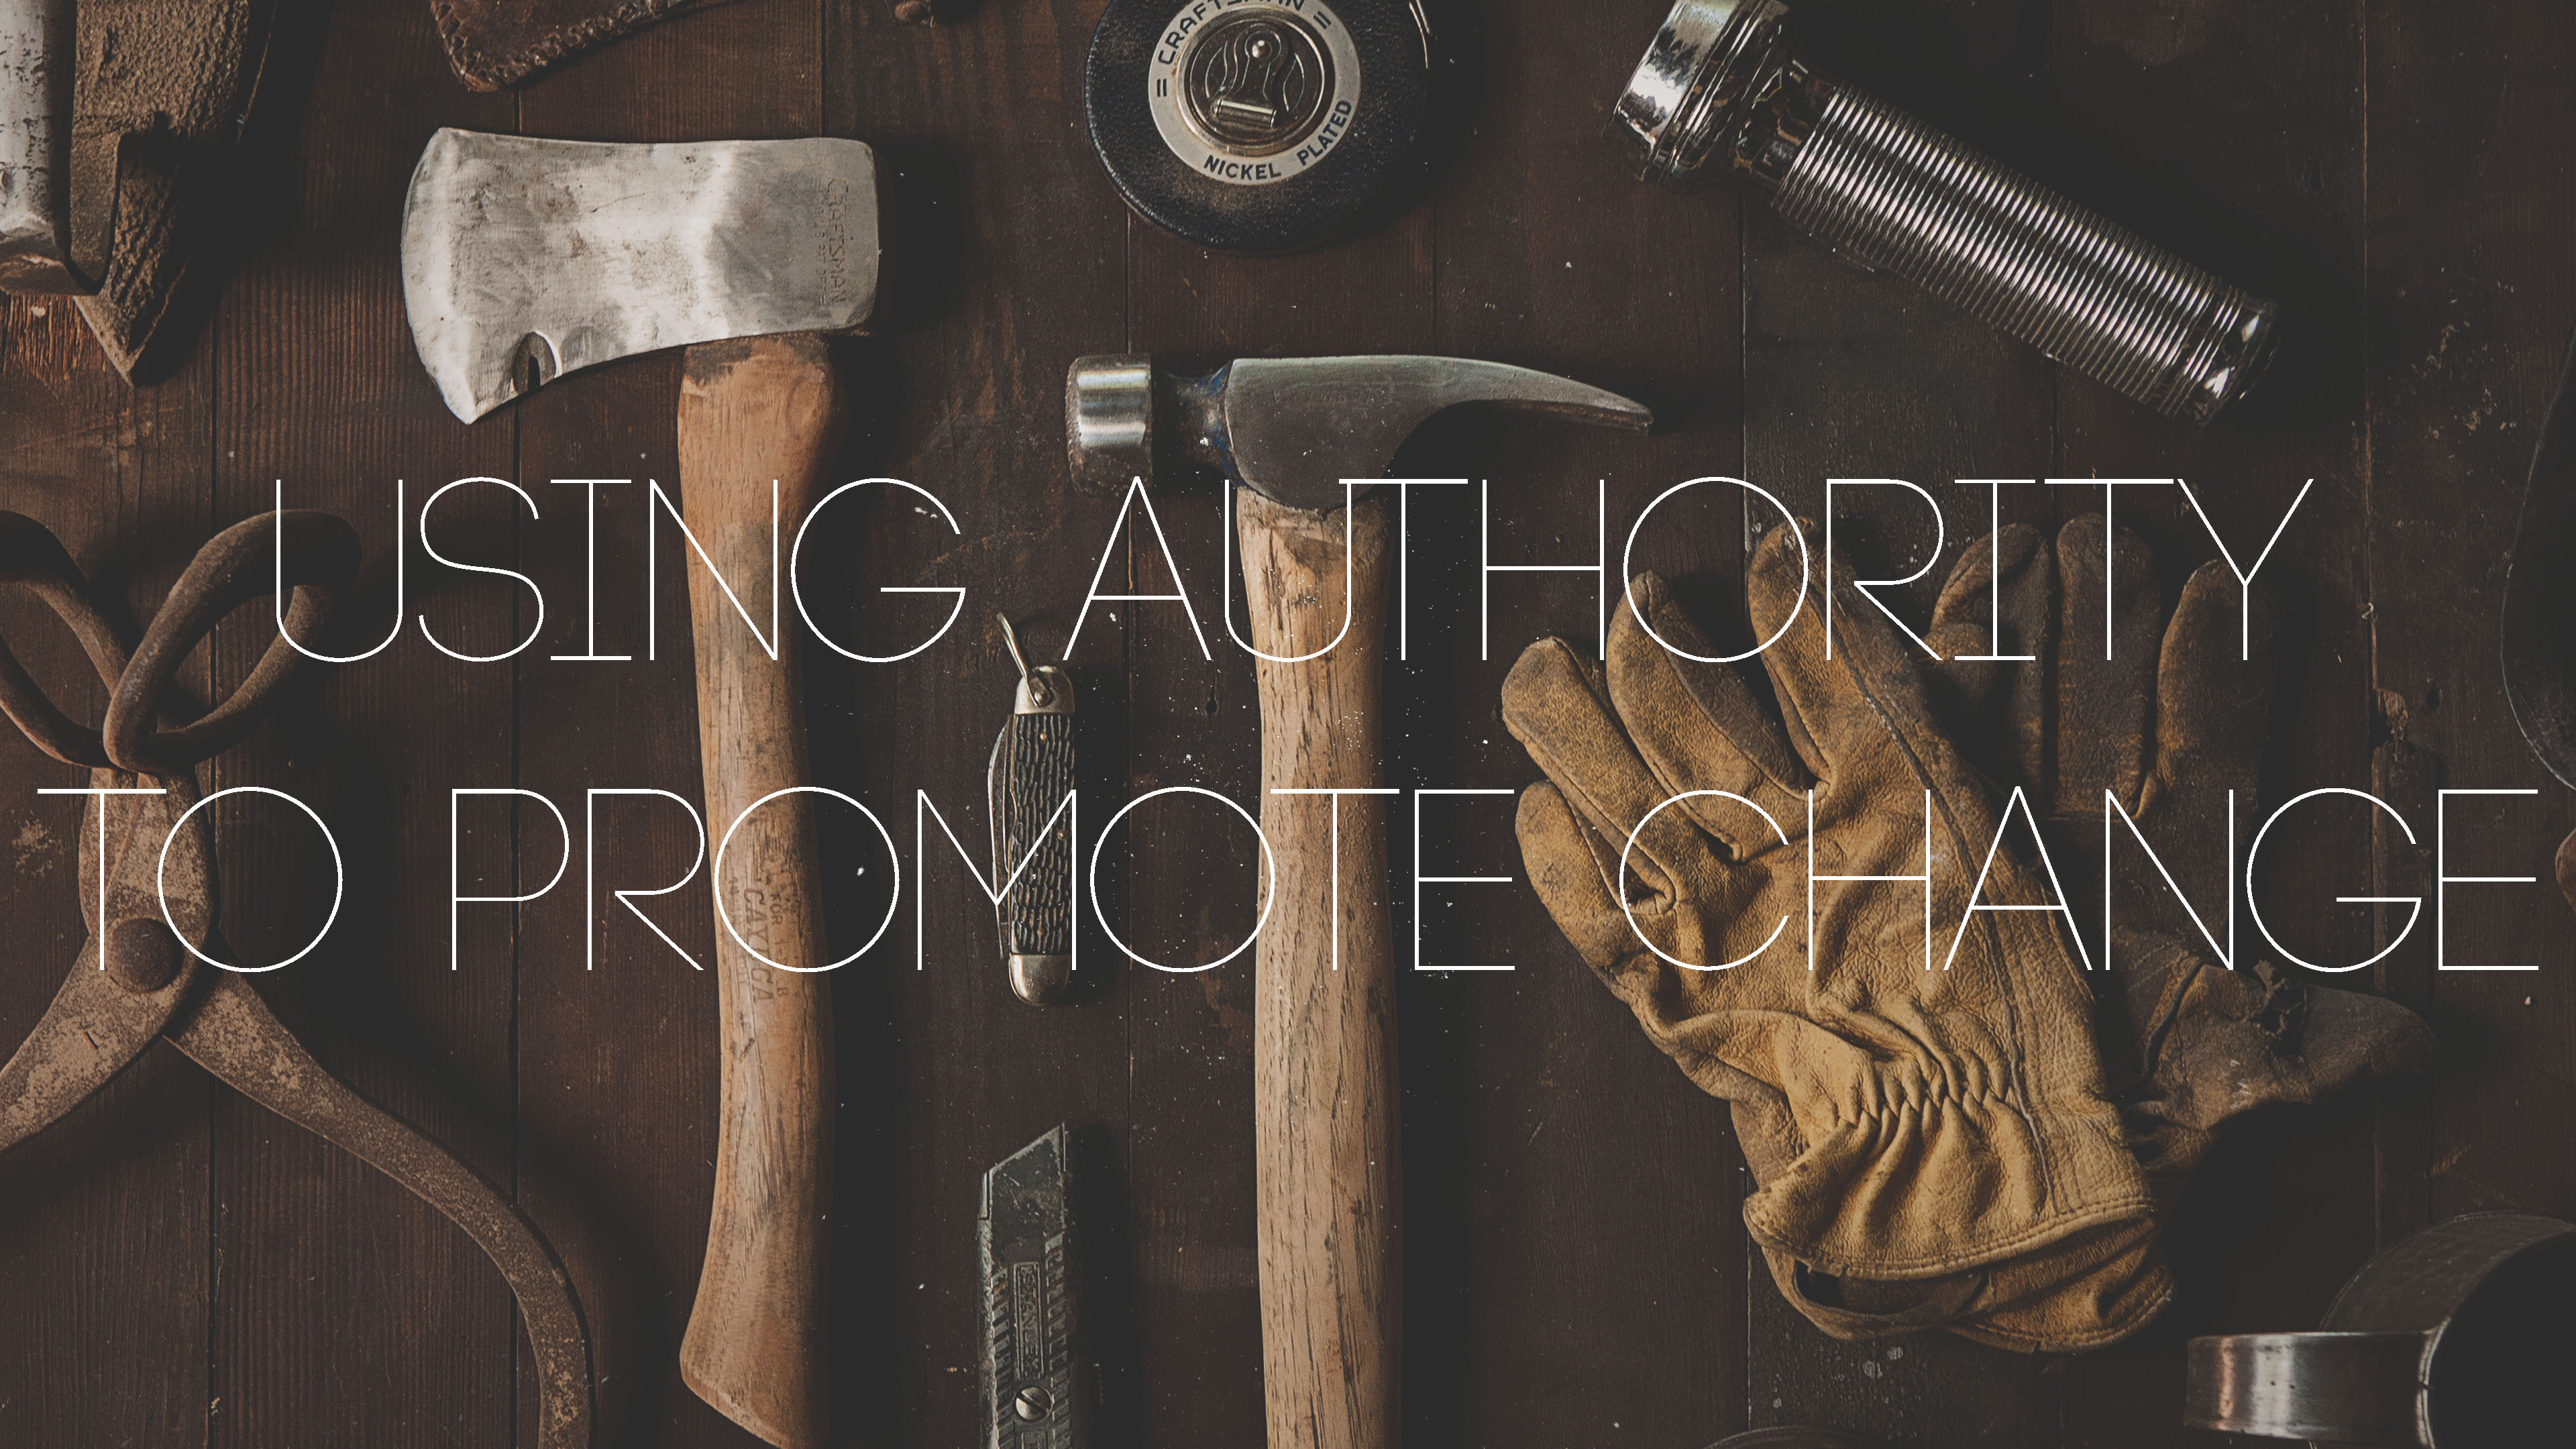 A Leader's Toolbox: Using Authority to Promote Change